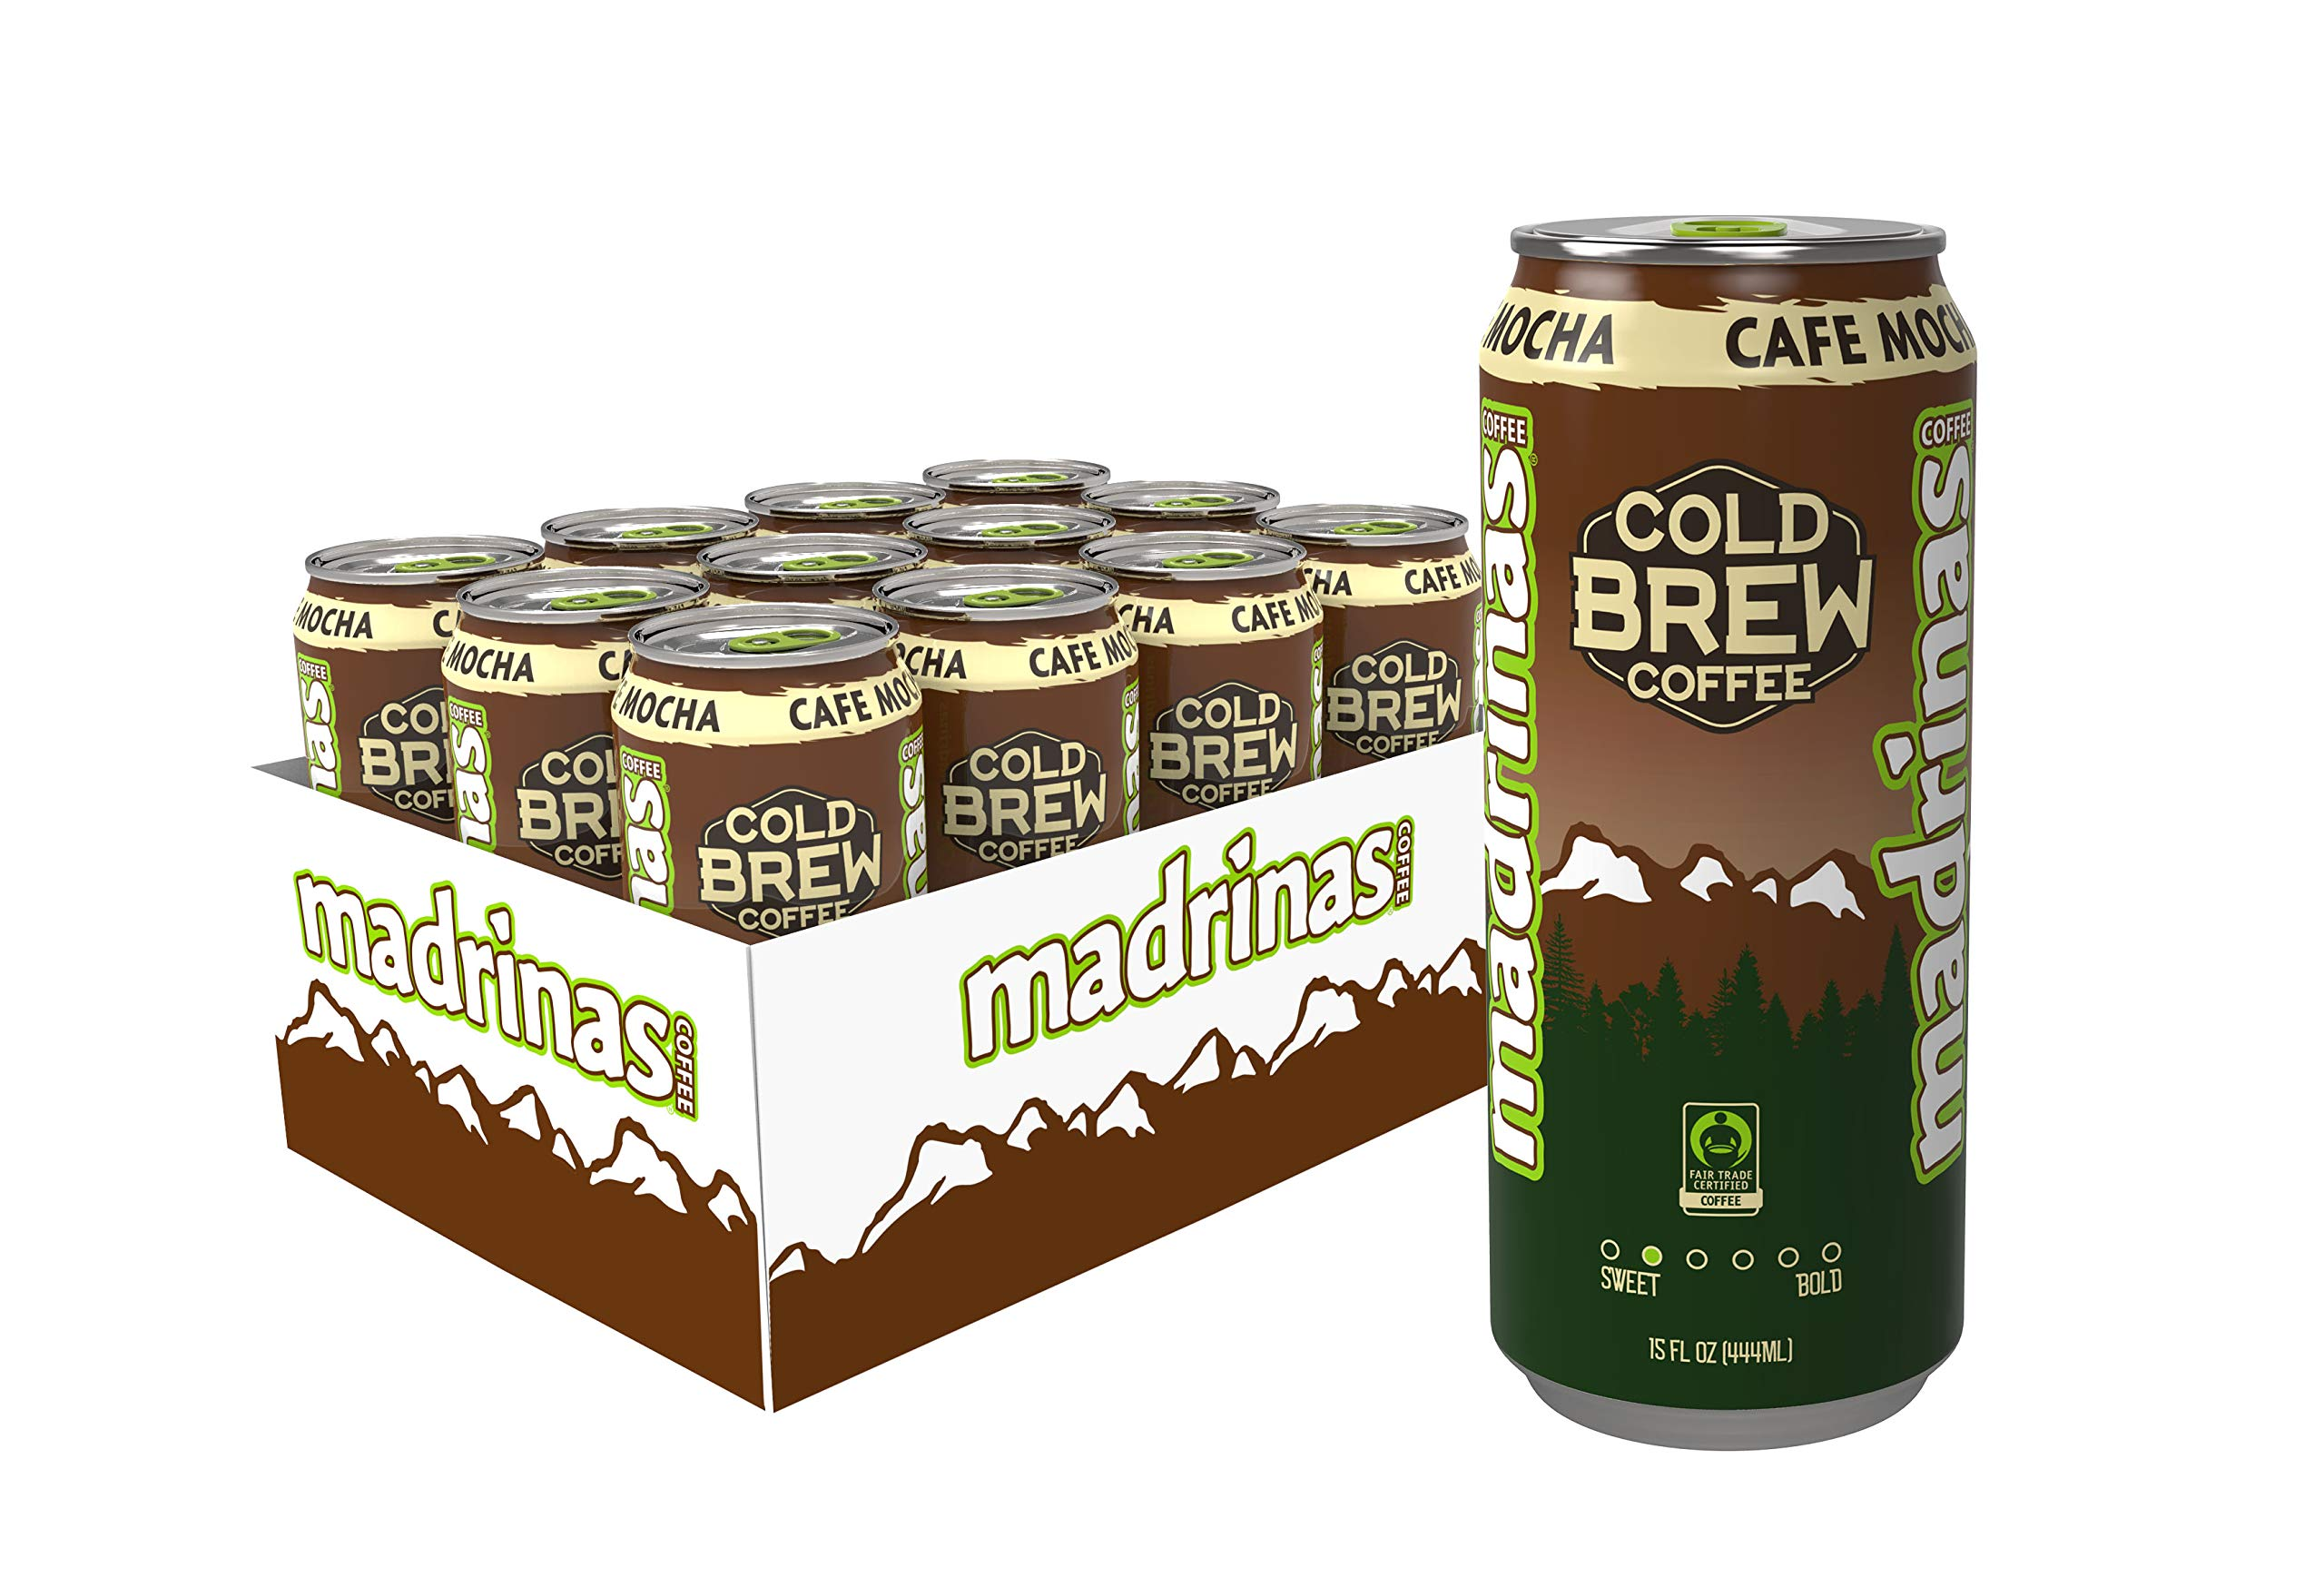 Madrinas Cafe Mocha Fair Trade Cold Brew Coffee, 15 Fl Oz (Pack Of 12) by Madrinas Coffee